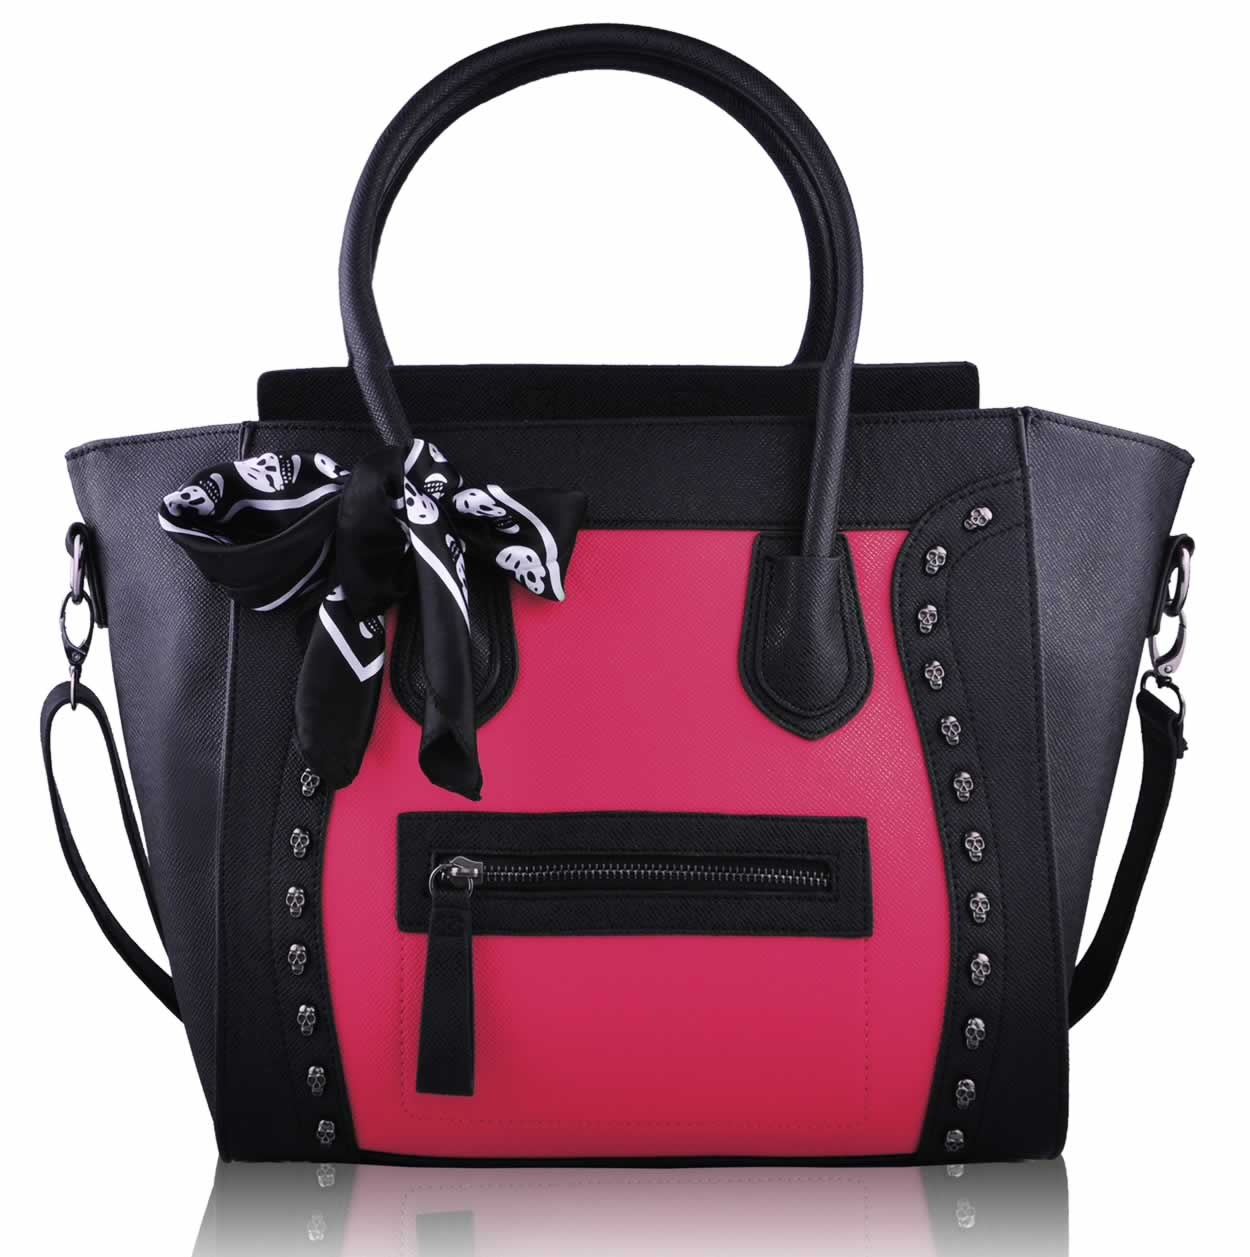 Women's Bags Discover a range of totes, clutches, briefcases, backpacks, luggage, shoulder bags, and more in this exclusive edit. Find designer styles by iconic fashion houses including Bottega Veneta, Mulberry, and Givenchy alongside many more contemporary brands, in everything from durable canvas to butter-soft leather.